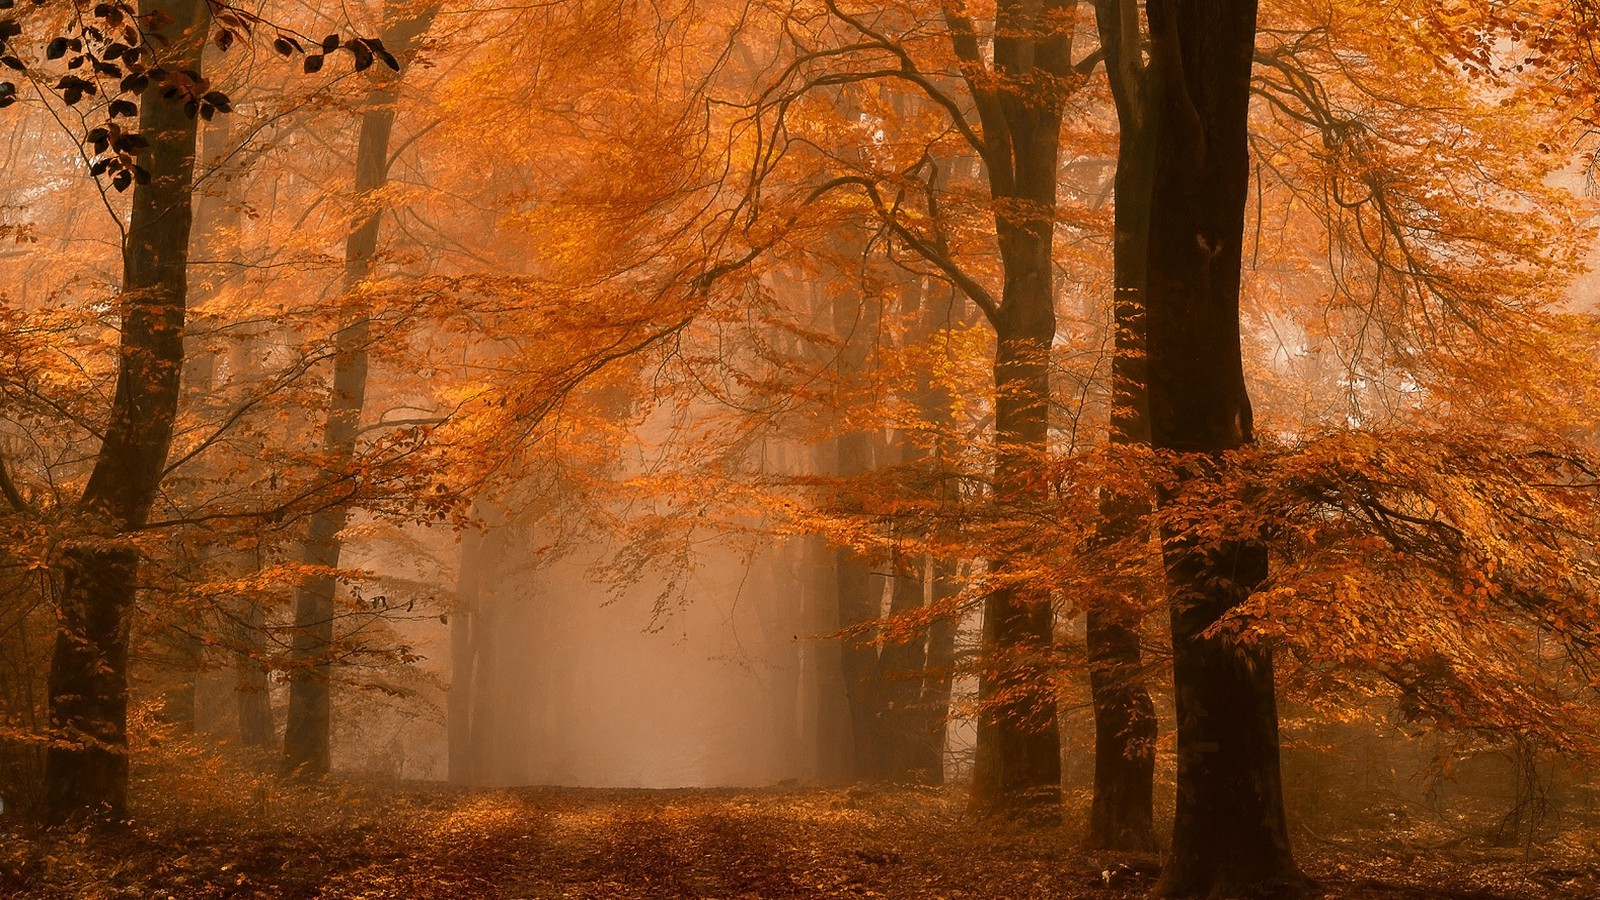 Fall Leaves Wallpaper Nature Landscape Forest Fall Mist Path Amber Leaves